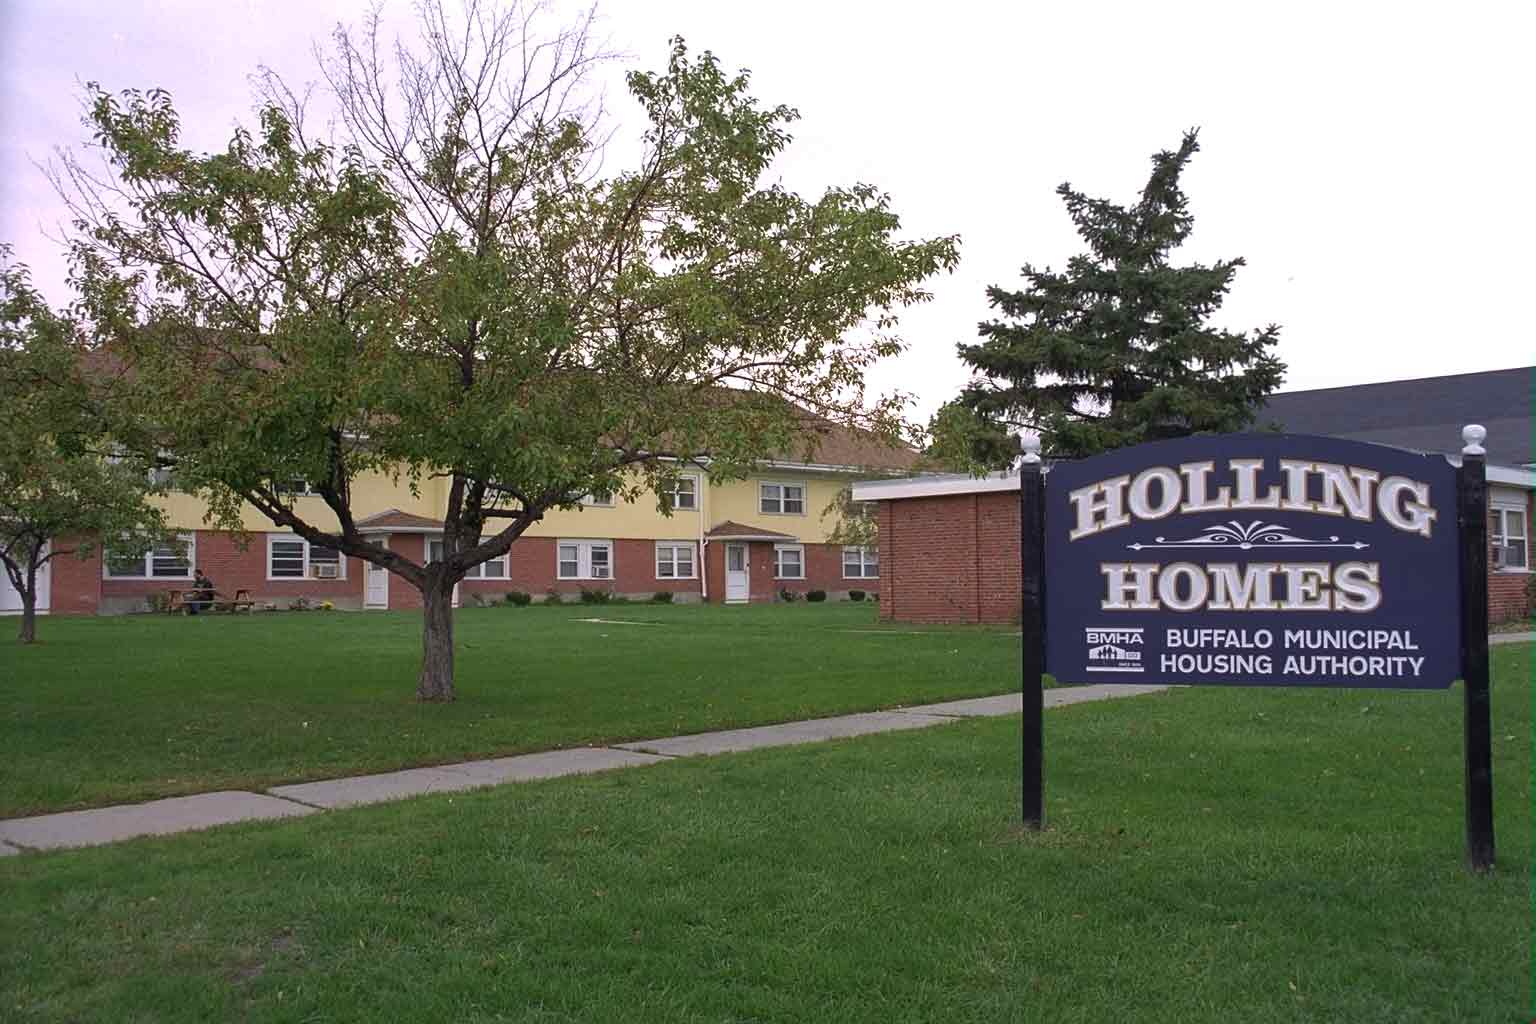 Image of Holling Homes in Buffalo, New York